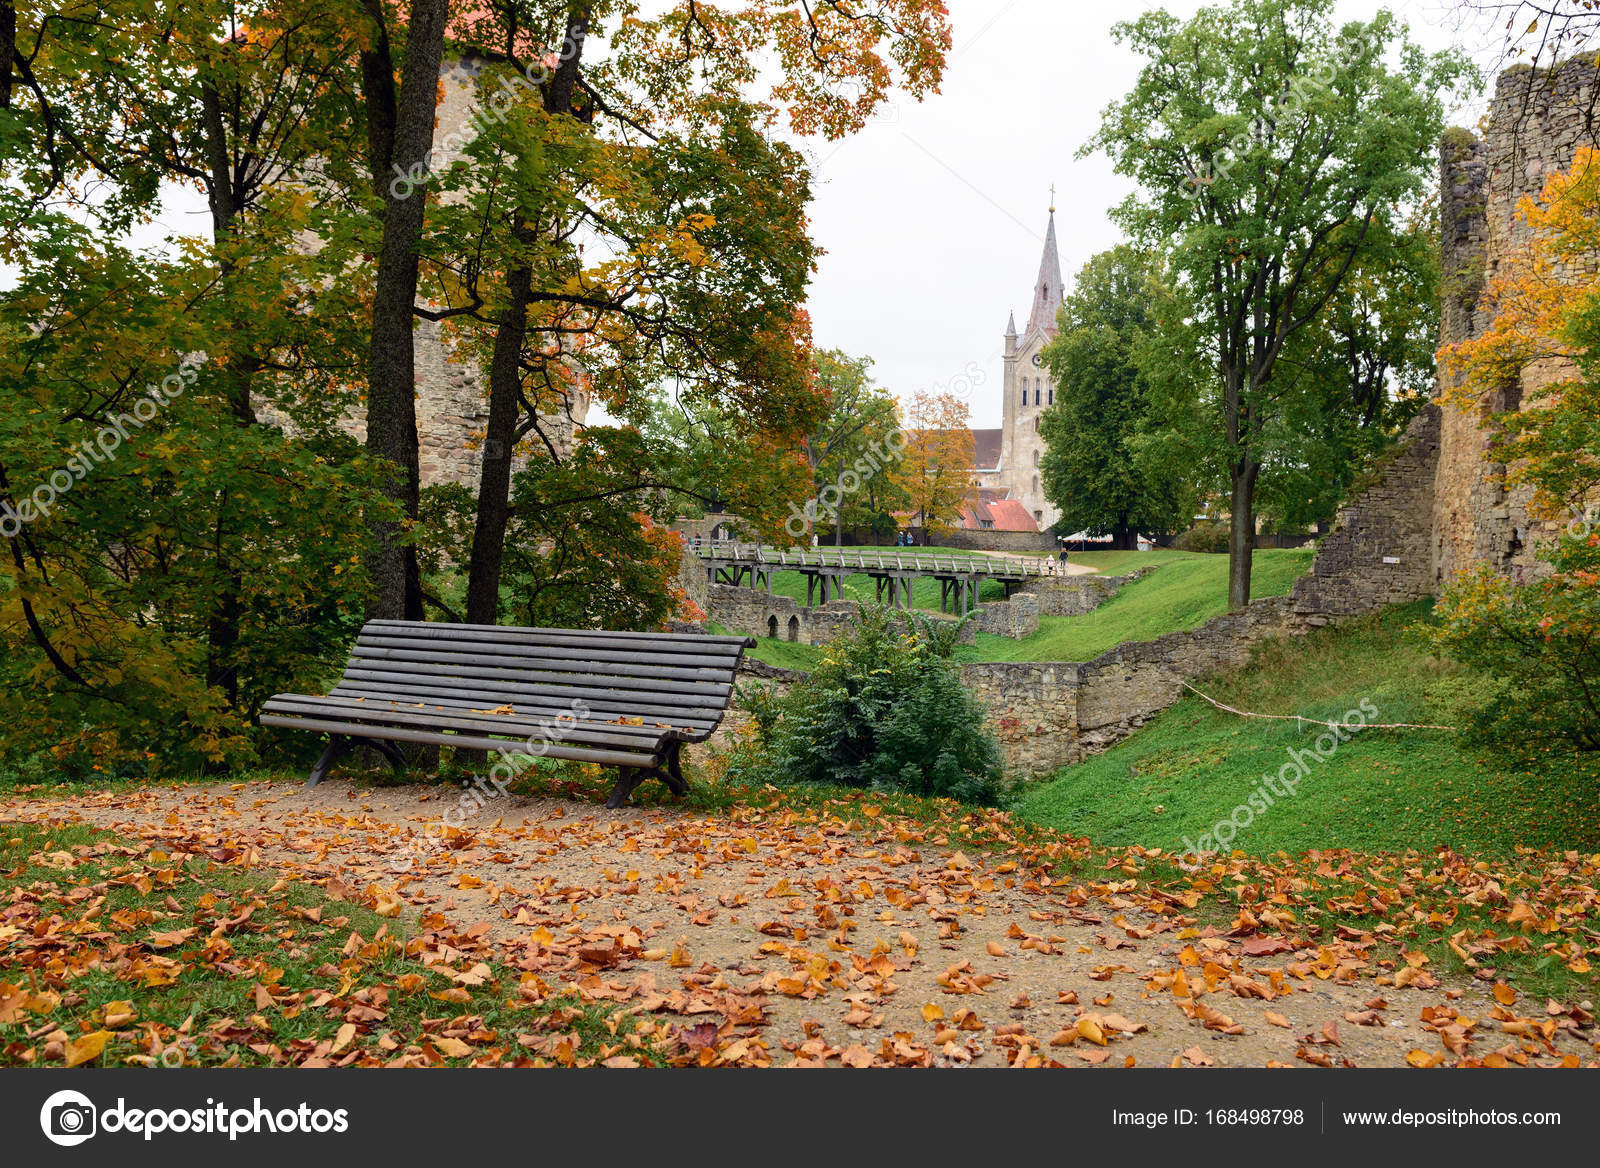 Strange Wooden Bench And Fallen Leaves With Medieval Ruins On A Machost Co Dining Chair Design Ideas Machostcouk